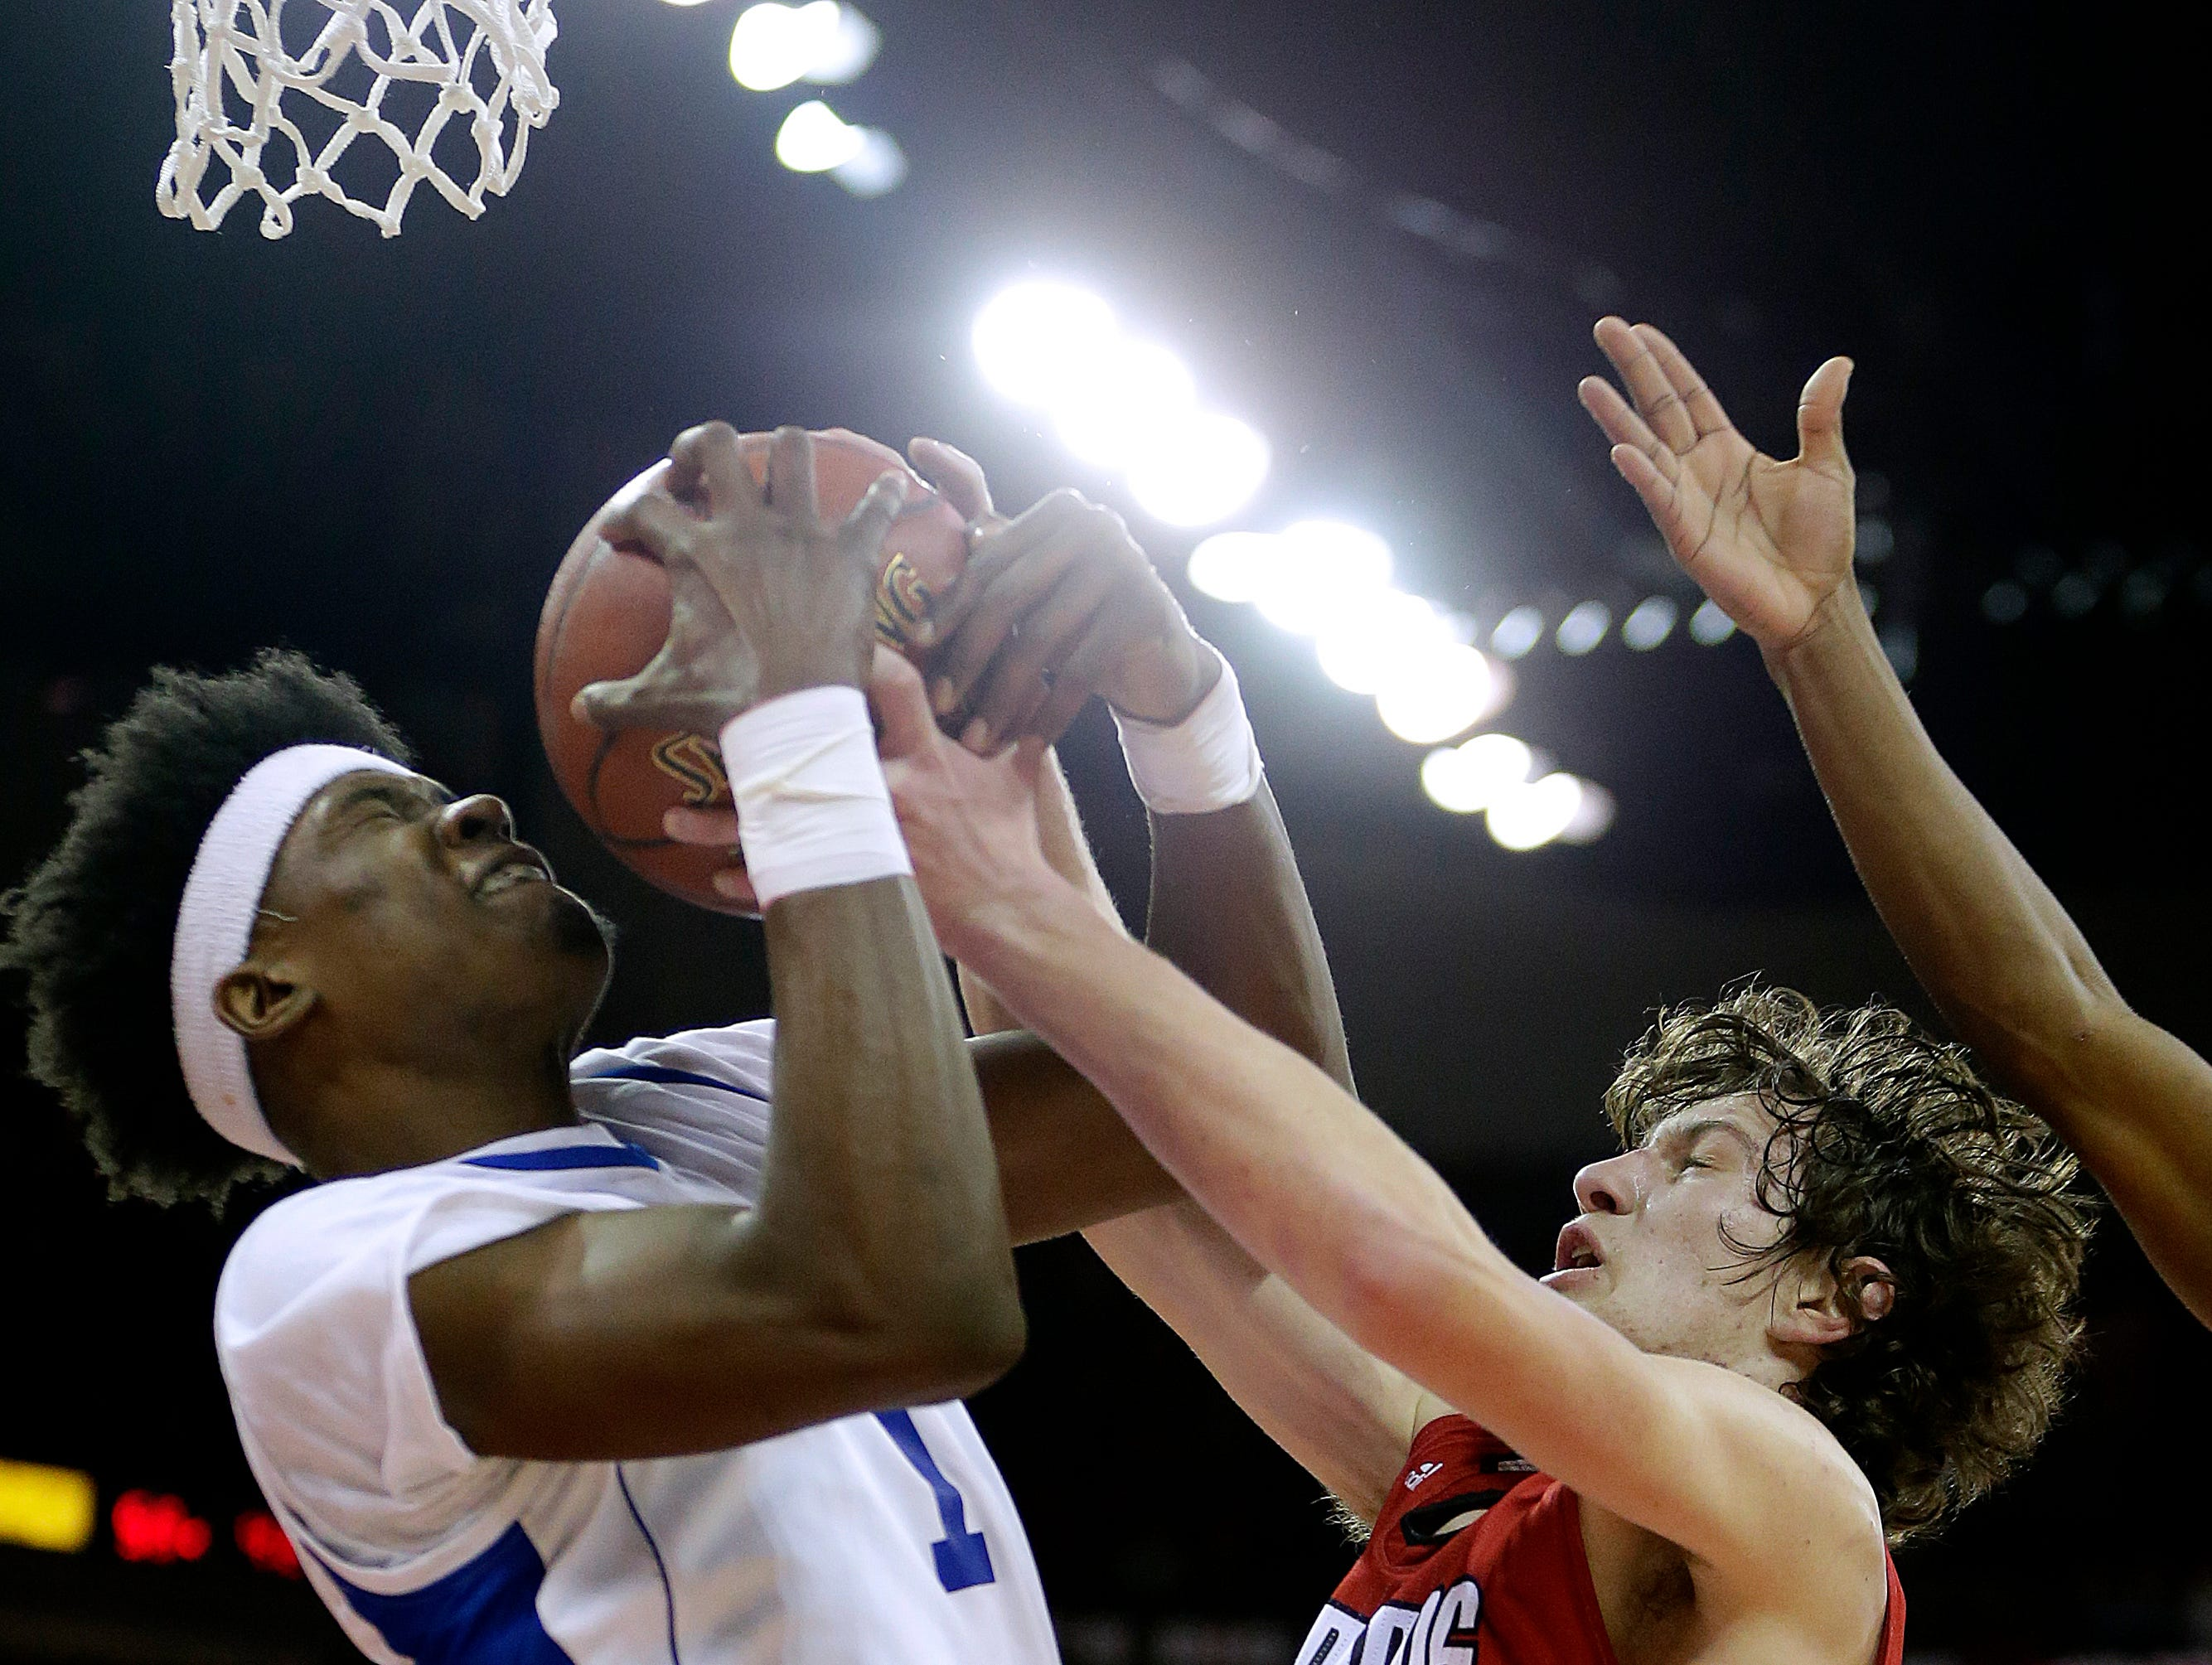 Destiny's Terrance Banyard (1) controls a rebound against Darlington's Will Schwartz (1) during Destiny's 76-55 win over Darlington to win the Division 4 Championship at the WIAA boys' state basketball championships Saturday, March 18, 2017, in Madison, Wis. Milwaukee Journal Sentinel photo by Rick Wood/RWOOD@JOURNALSENTINEL.COM    ORG XMIT: 20091664A